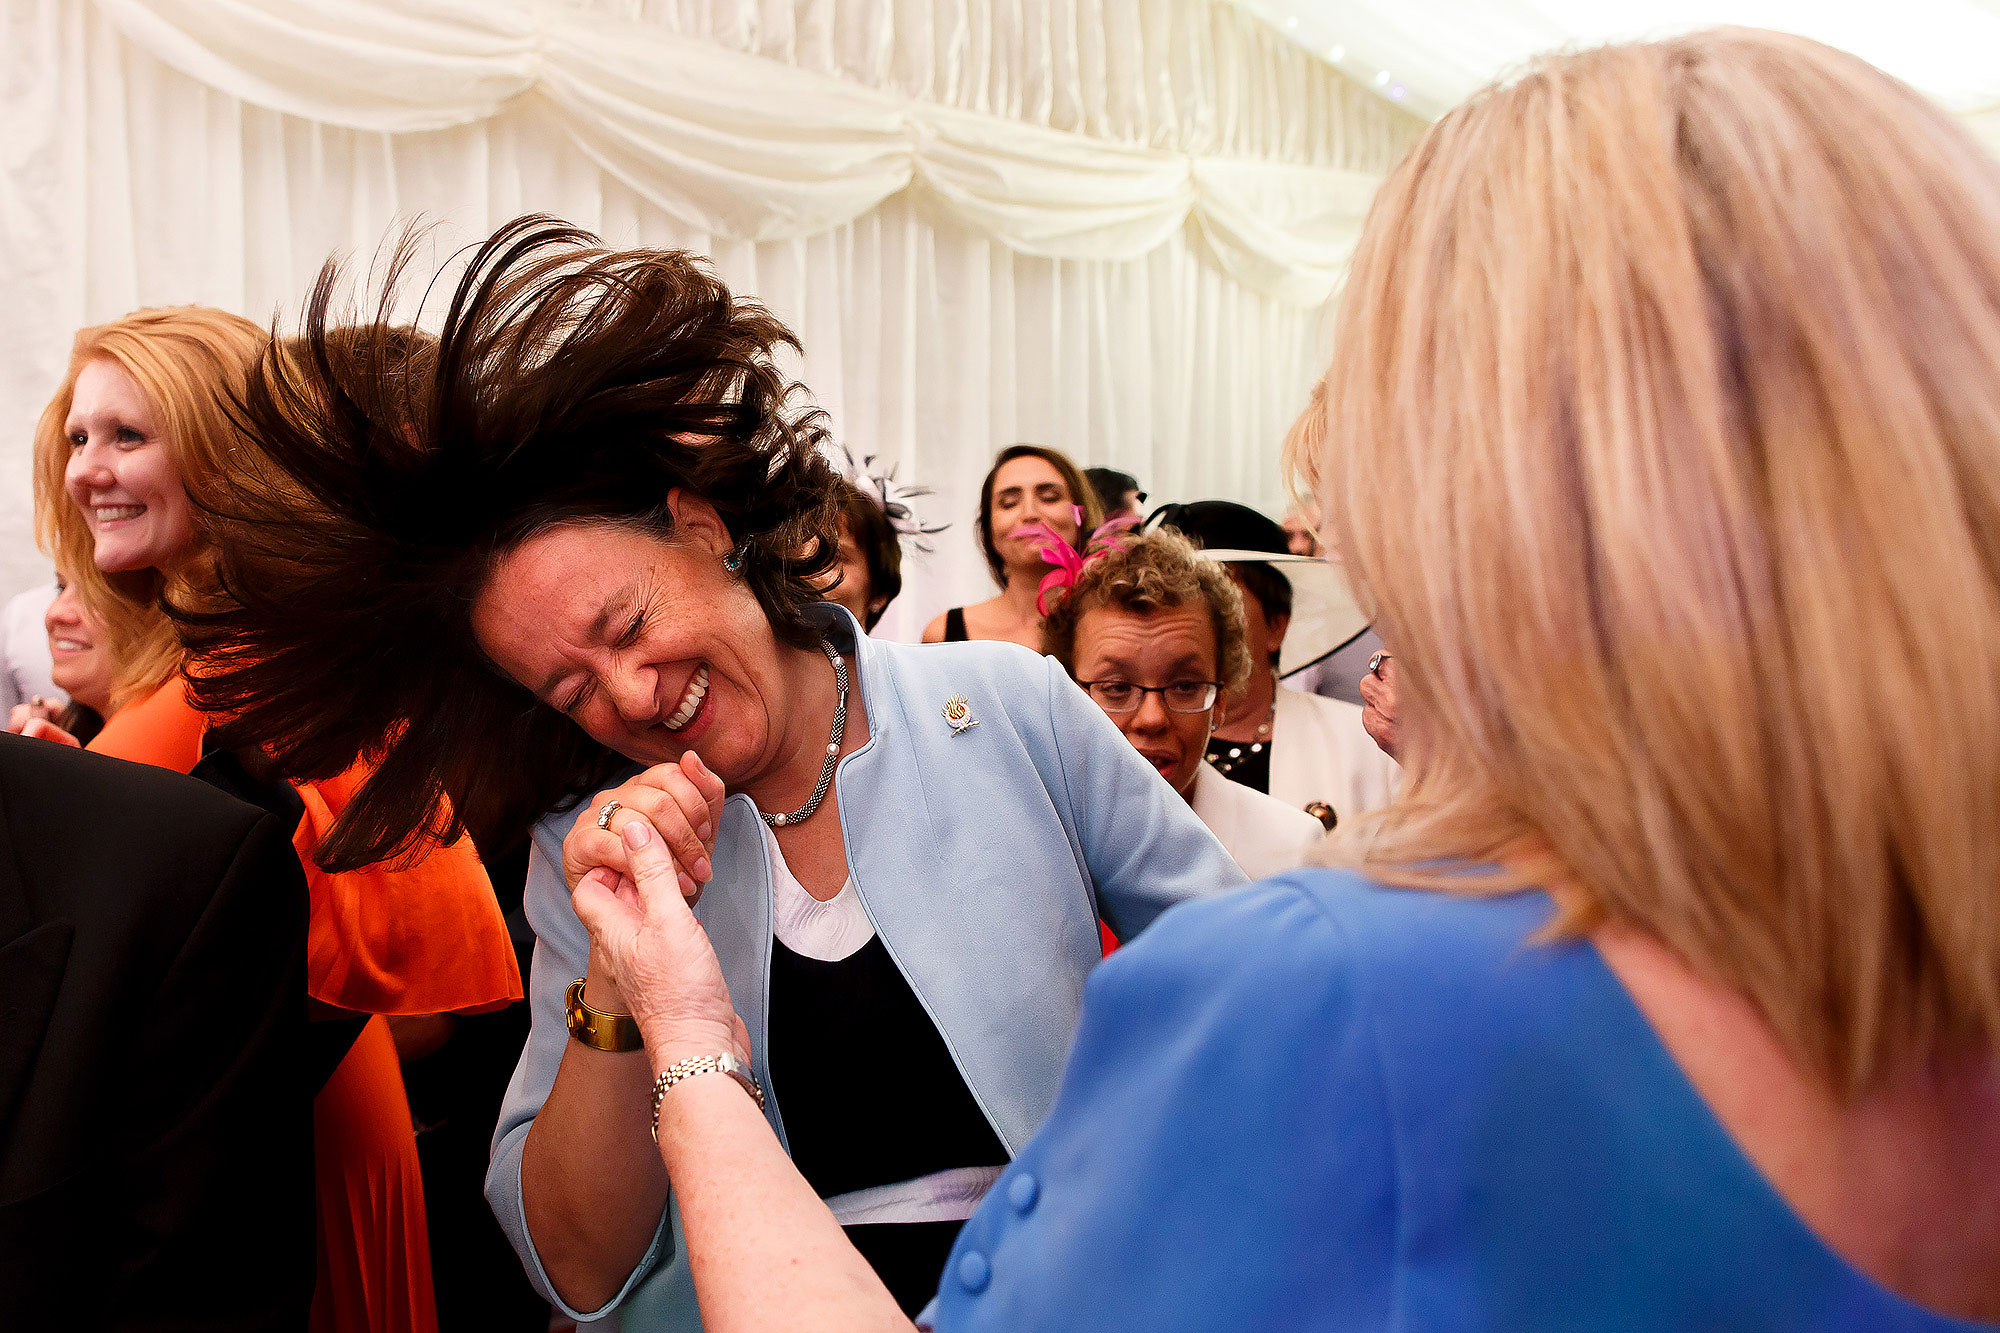 Wedding guests throwing their hair on the dance floor | Lake District Wedding by Toni Darcy Photography